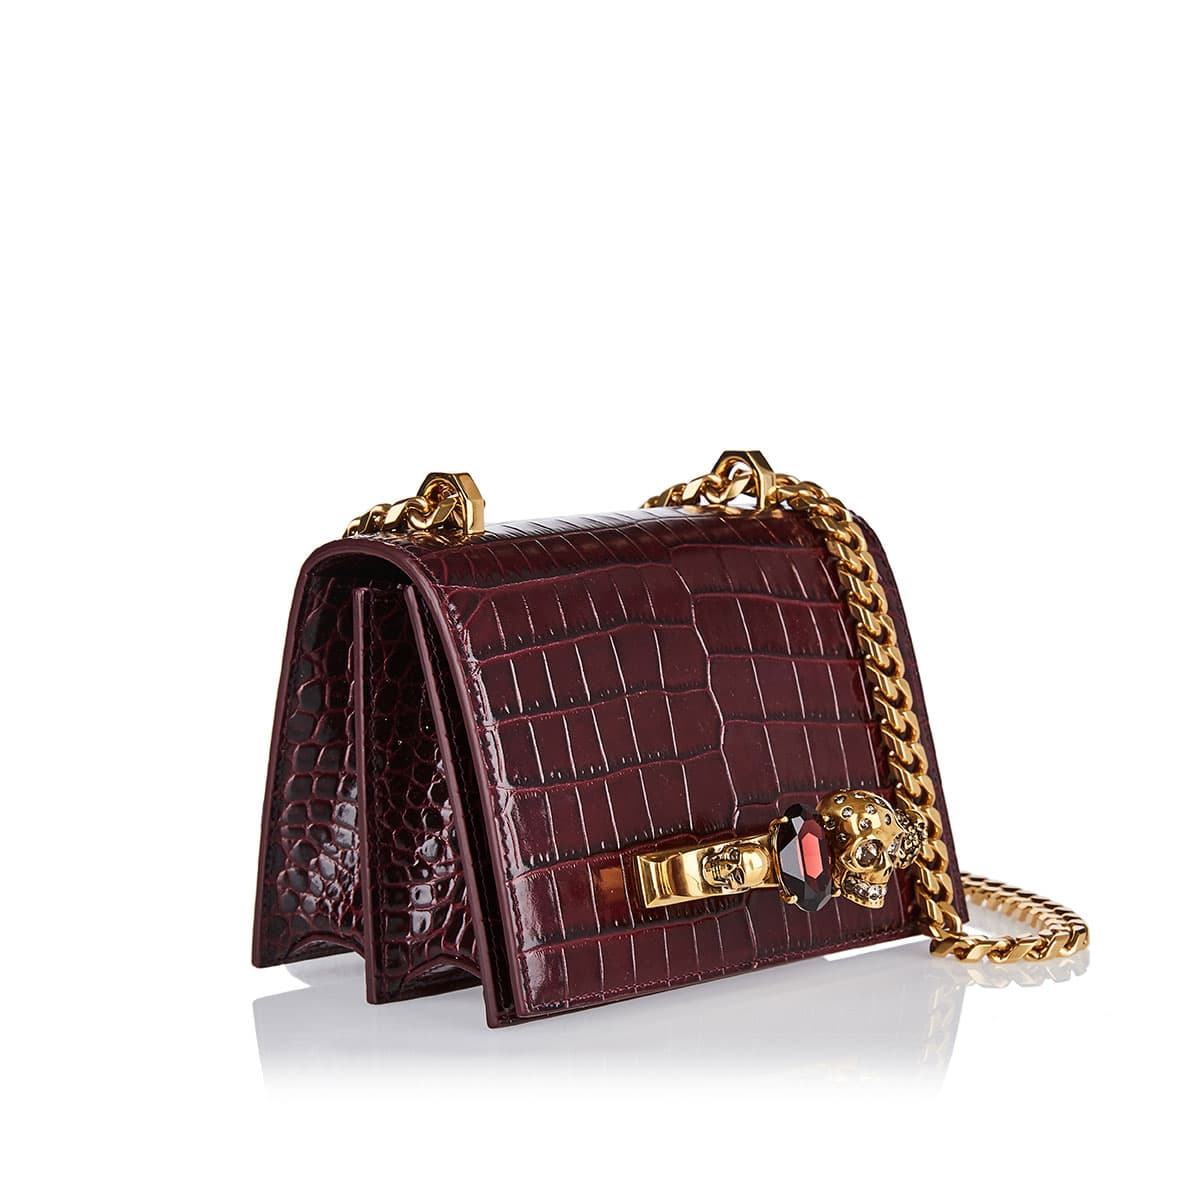 Four-ring croc-effect small chain bag